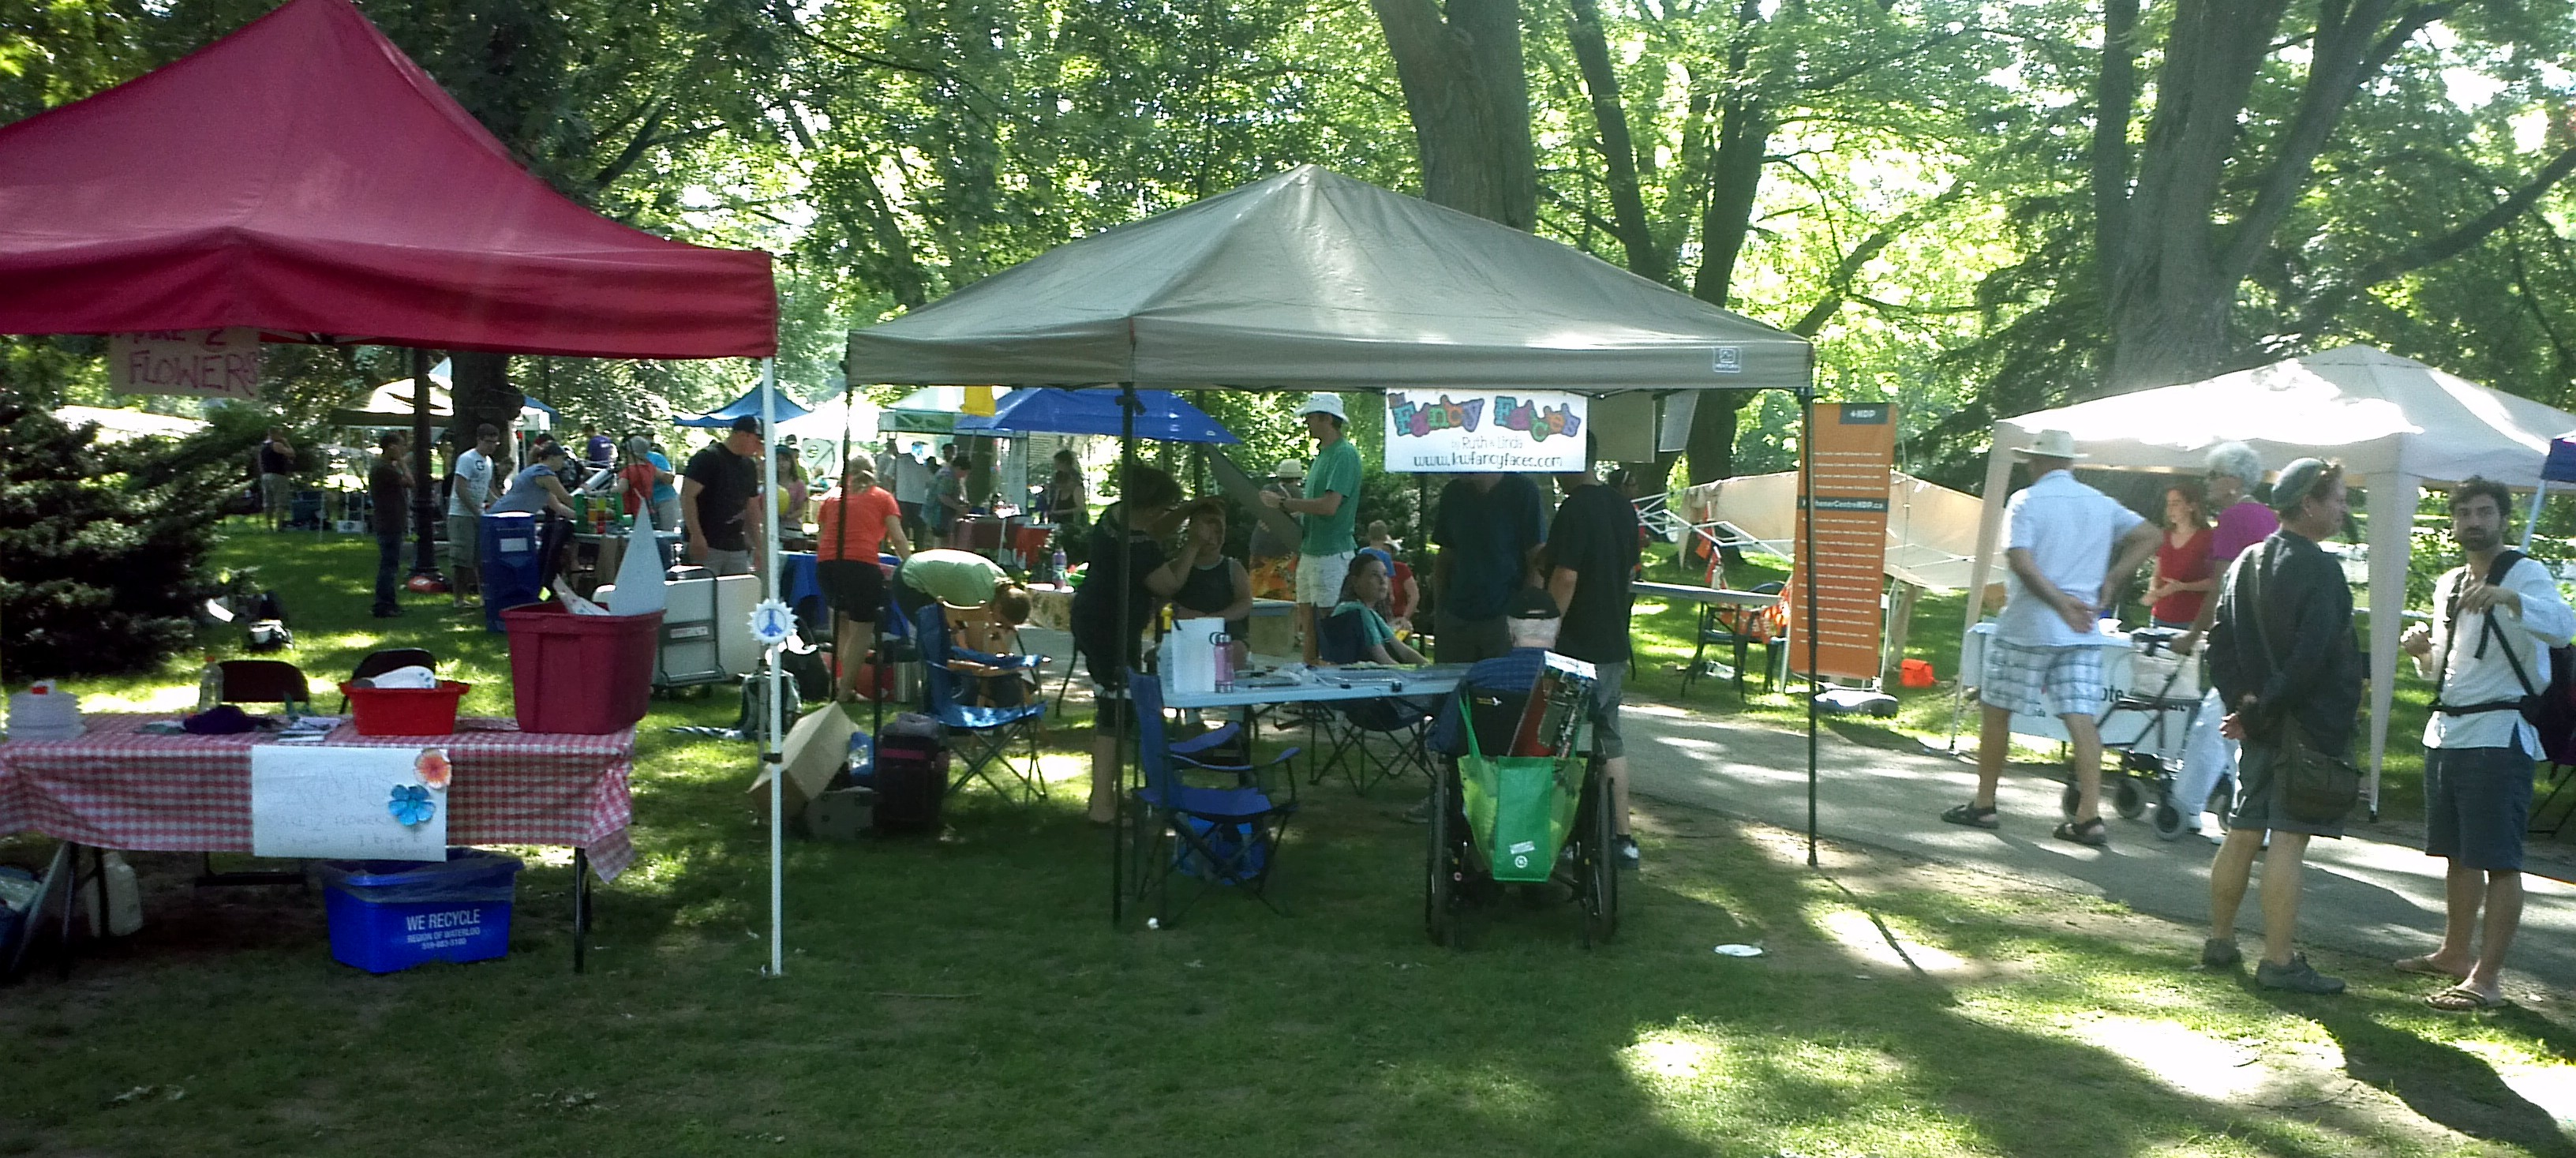 Booths at the Nonviolence Festival